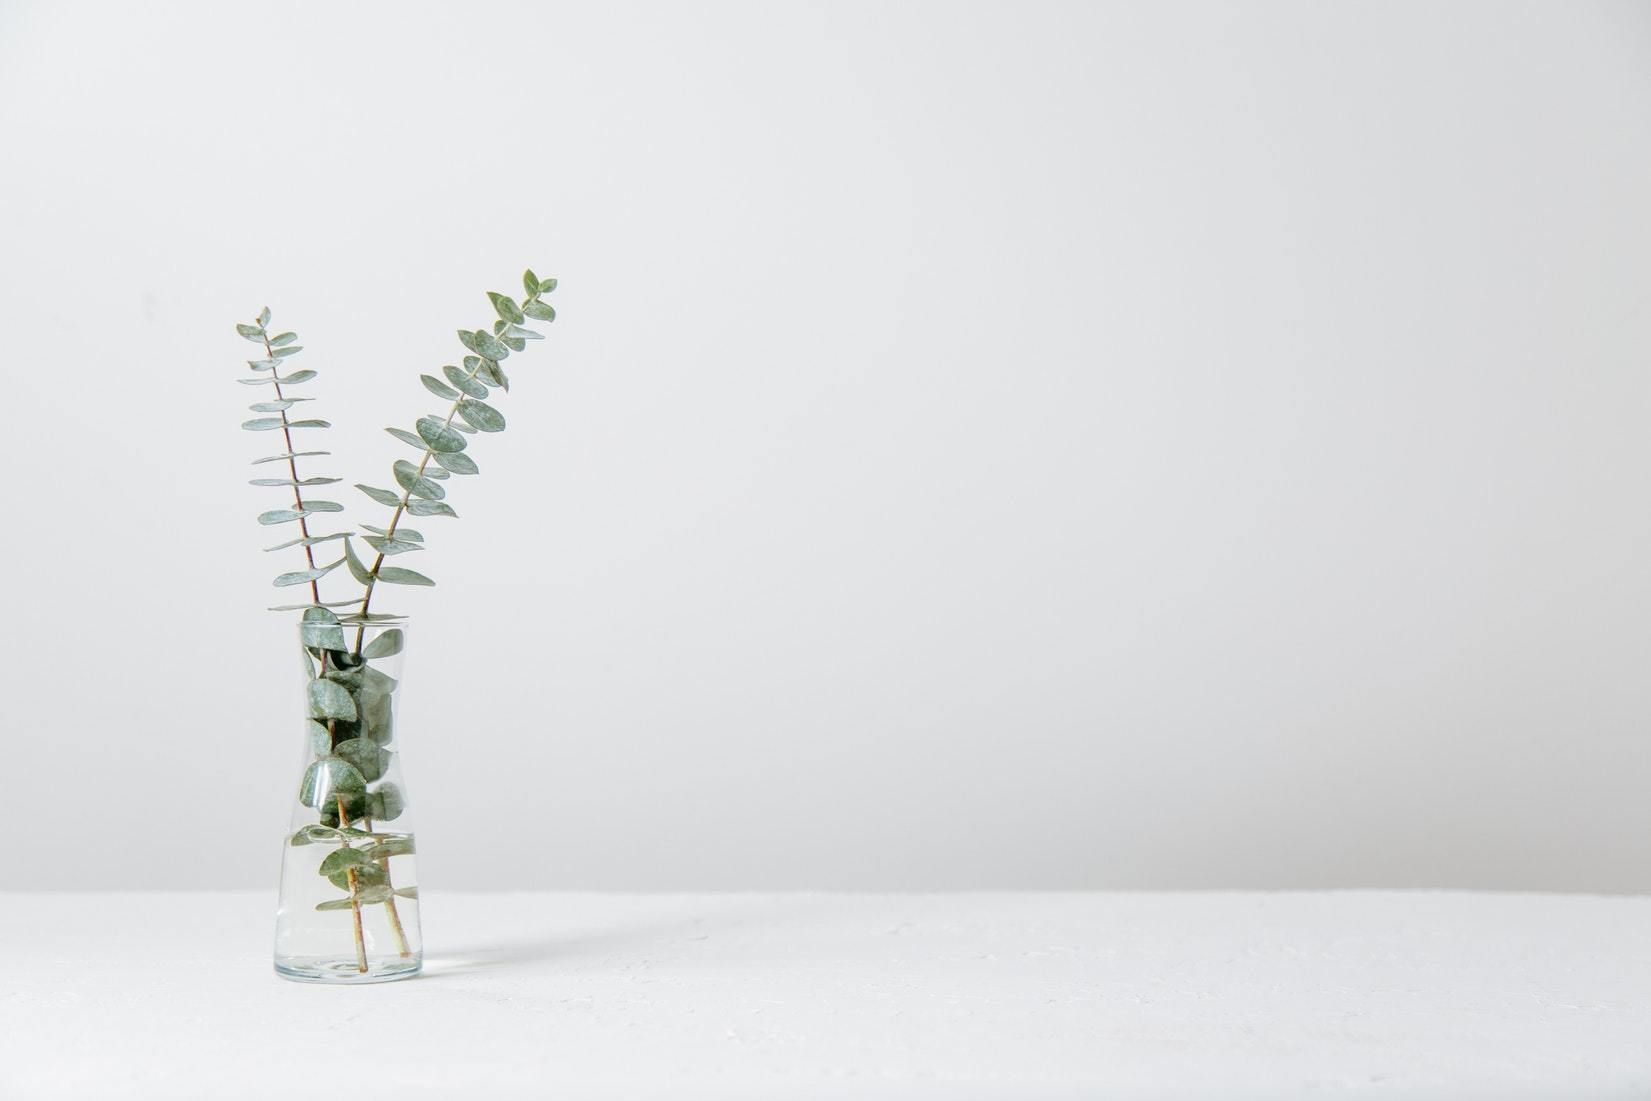 A single plant against a white background symoblising the peace therapy and counselling can bring